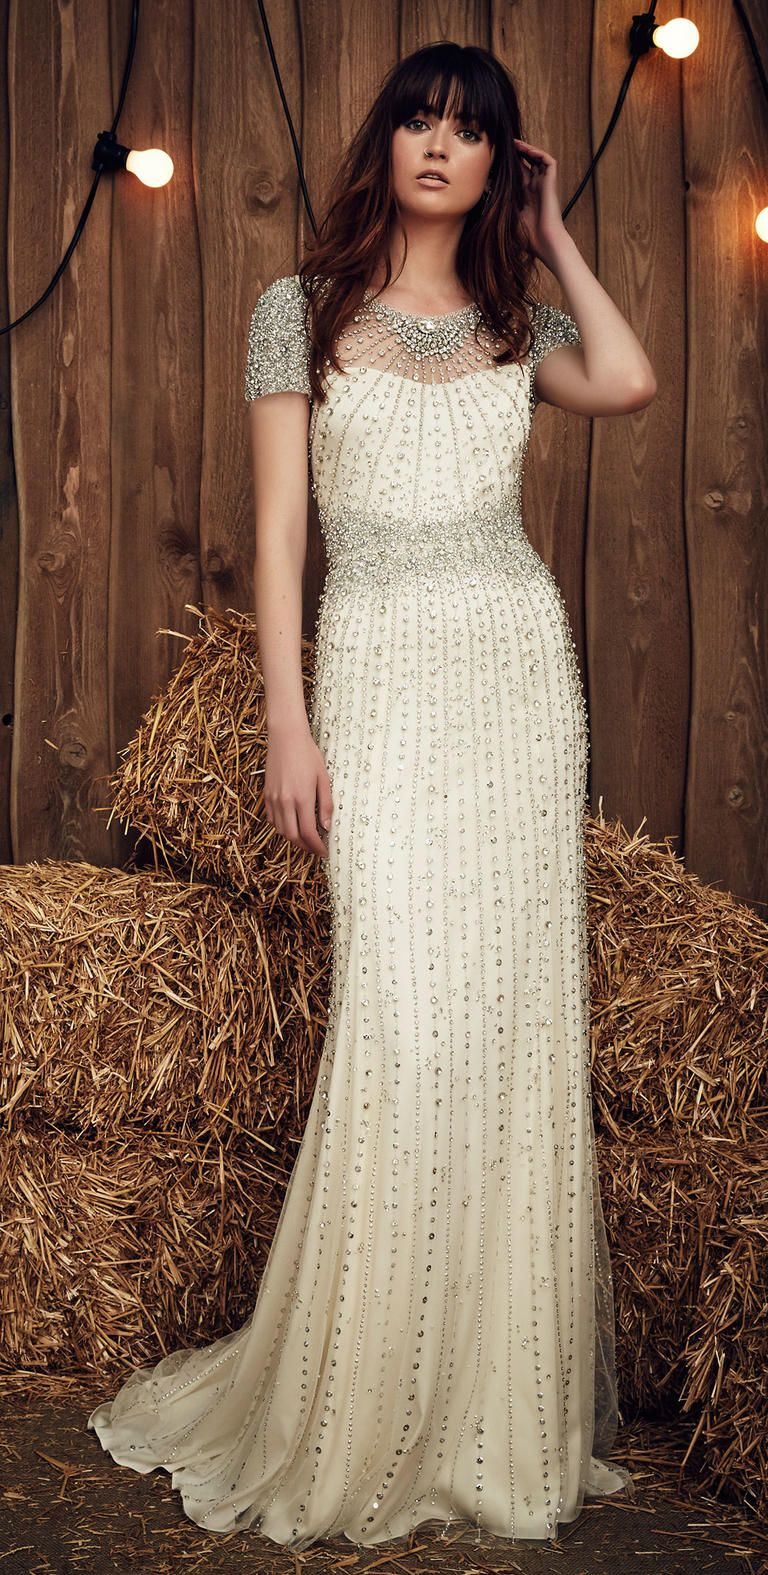 Celadon Green Hits the Runway at Jenny Packham\'s Gypsy-Inspired ...